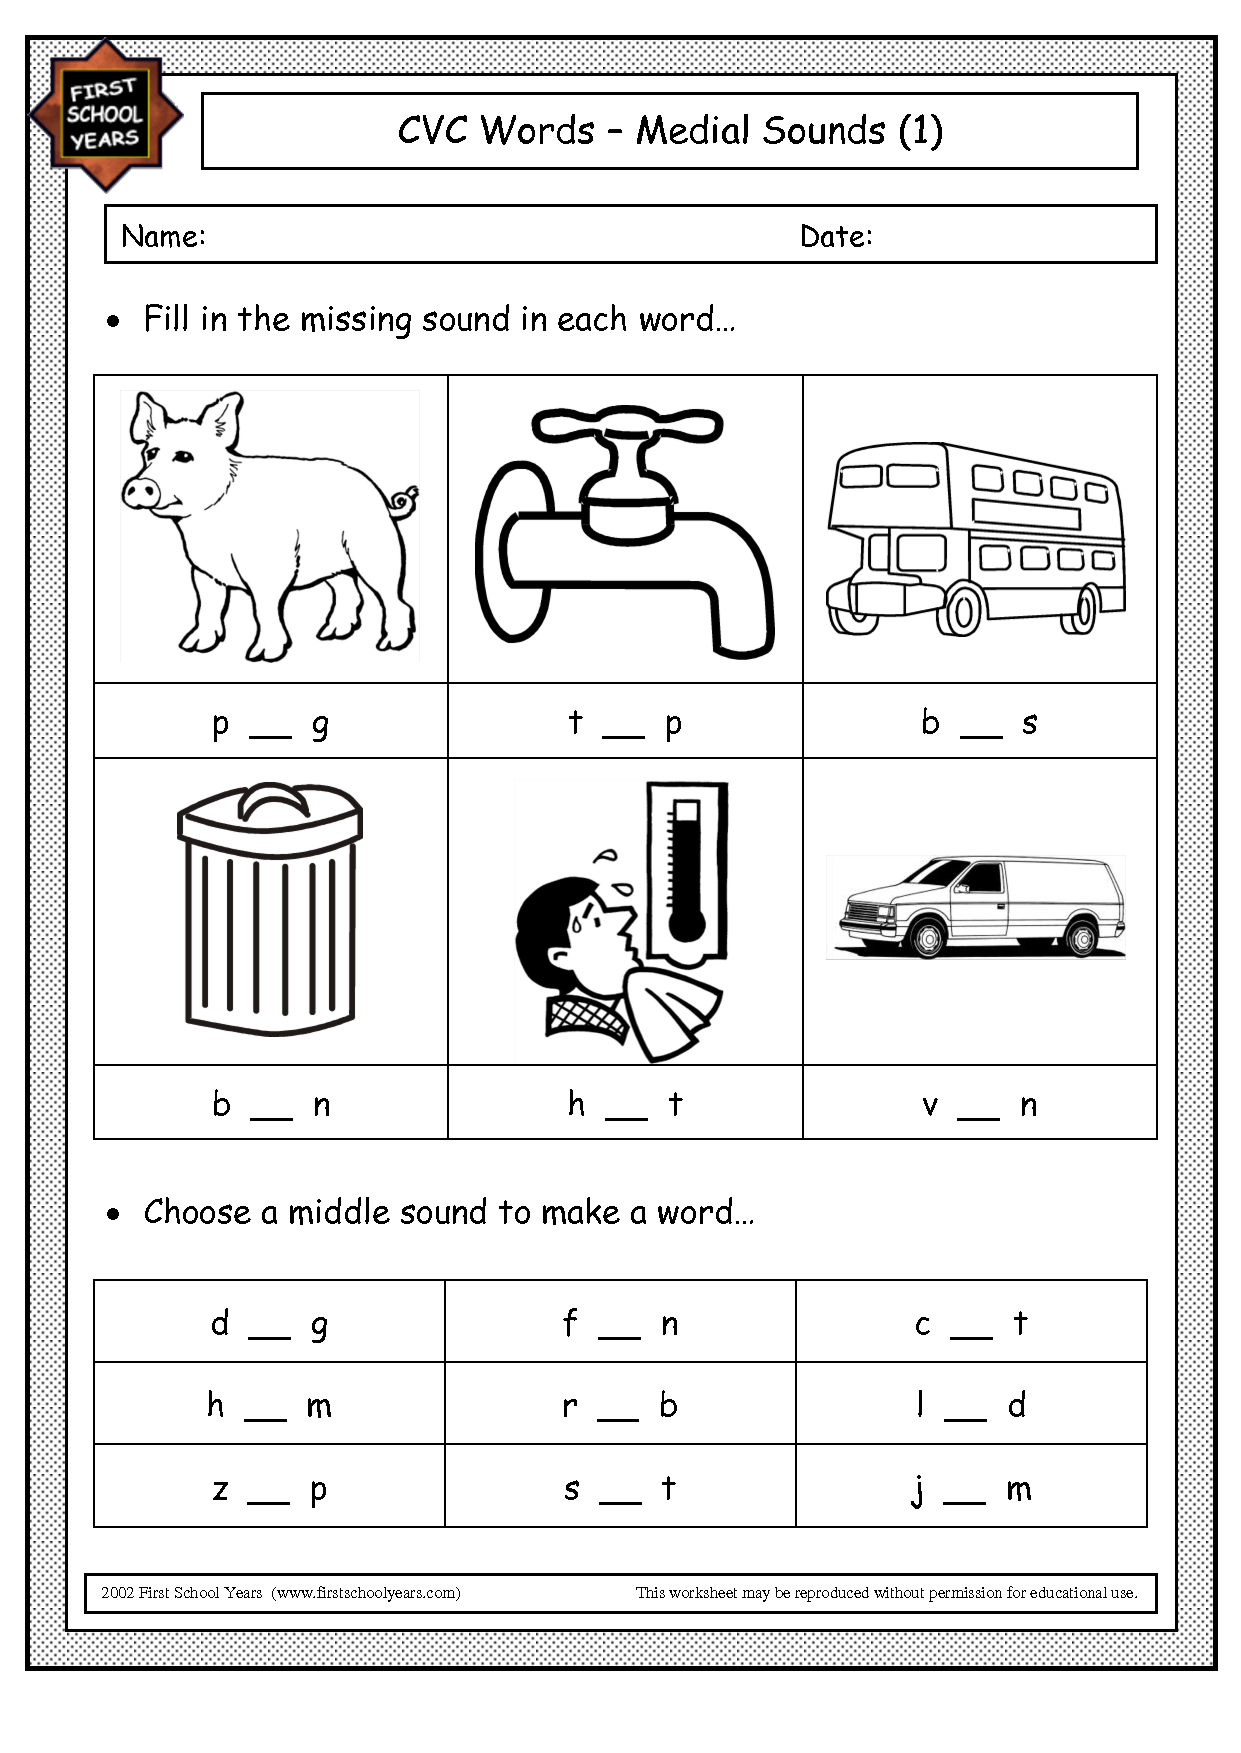 Missing Middle Sound Worksheets